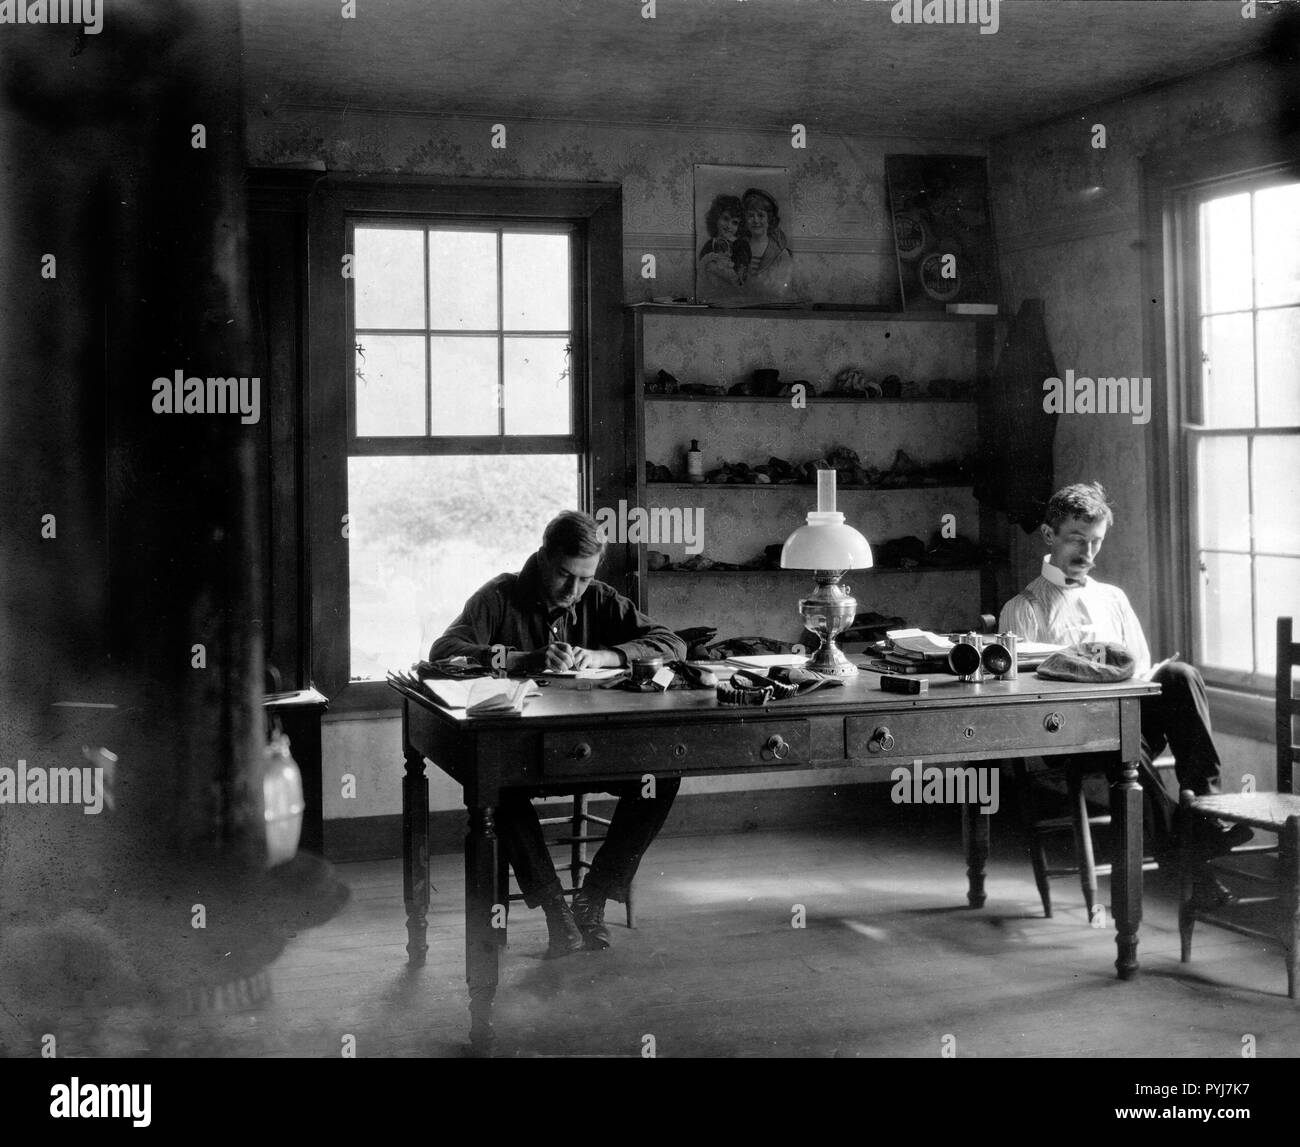 These gentleman geologists are hard at work in their field office going over their field notes. This photo was taken in 1903 in Crab Orchard, Lee County, Virginia. - Stock Image